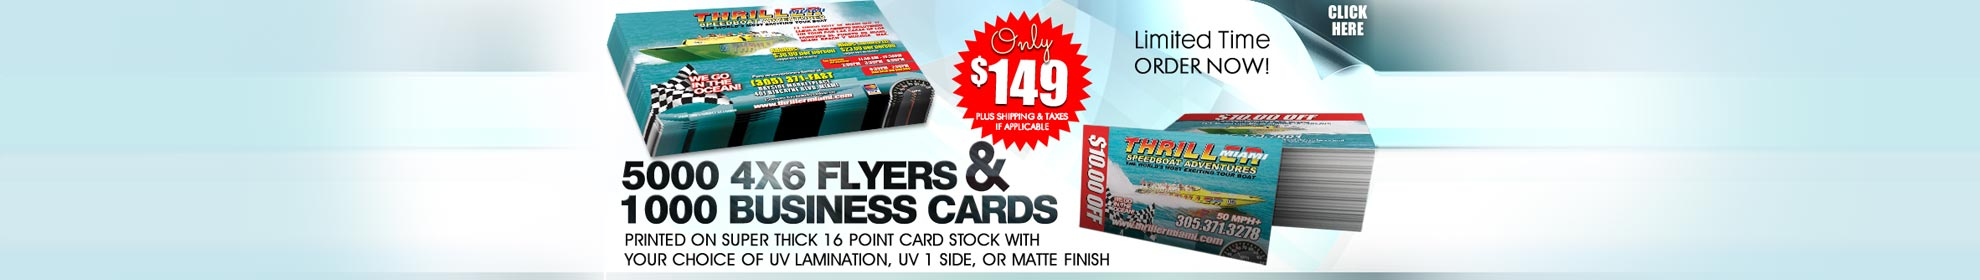 Flyer and Business Card Printing Special